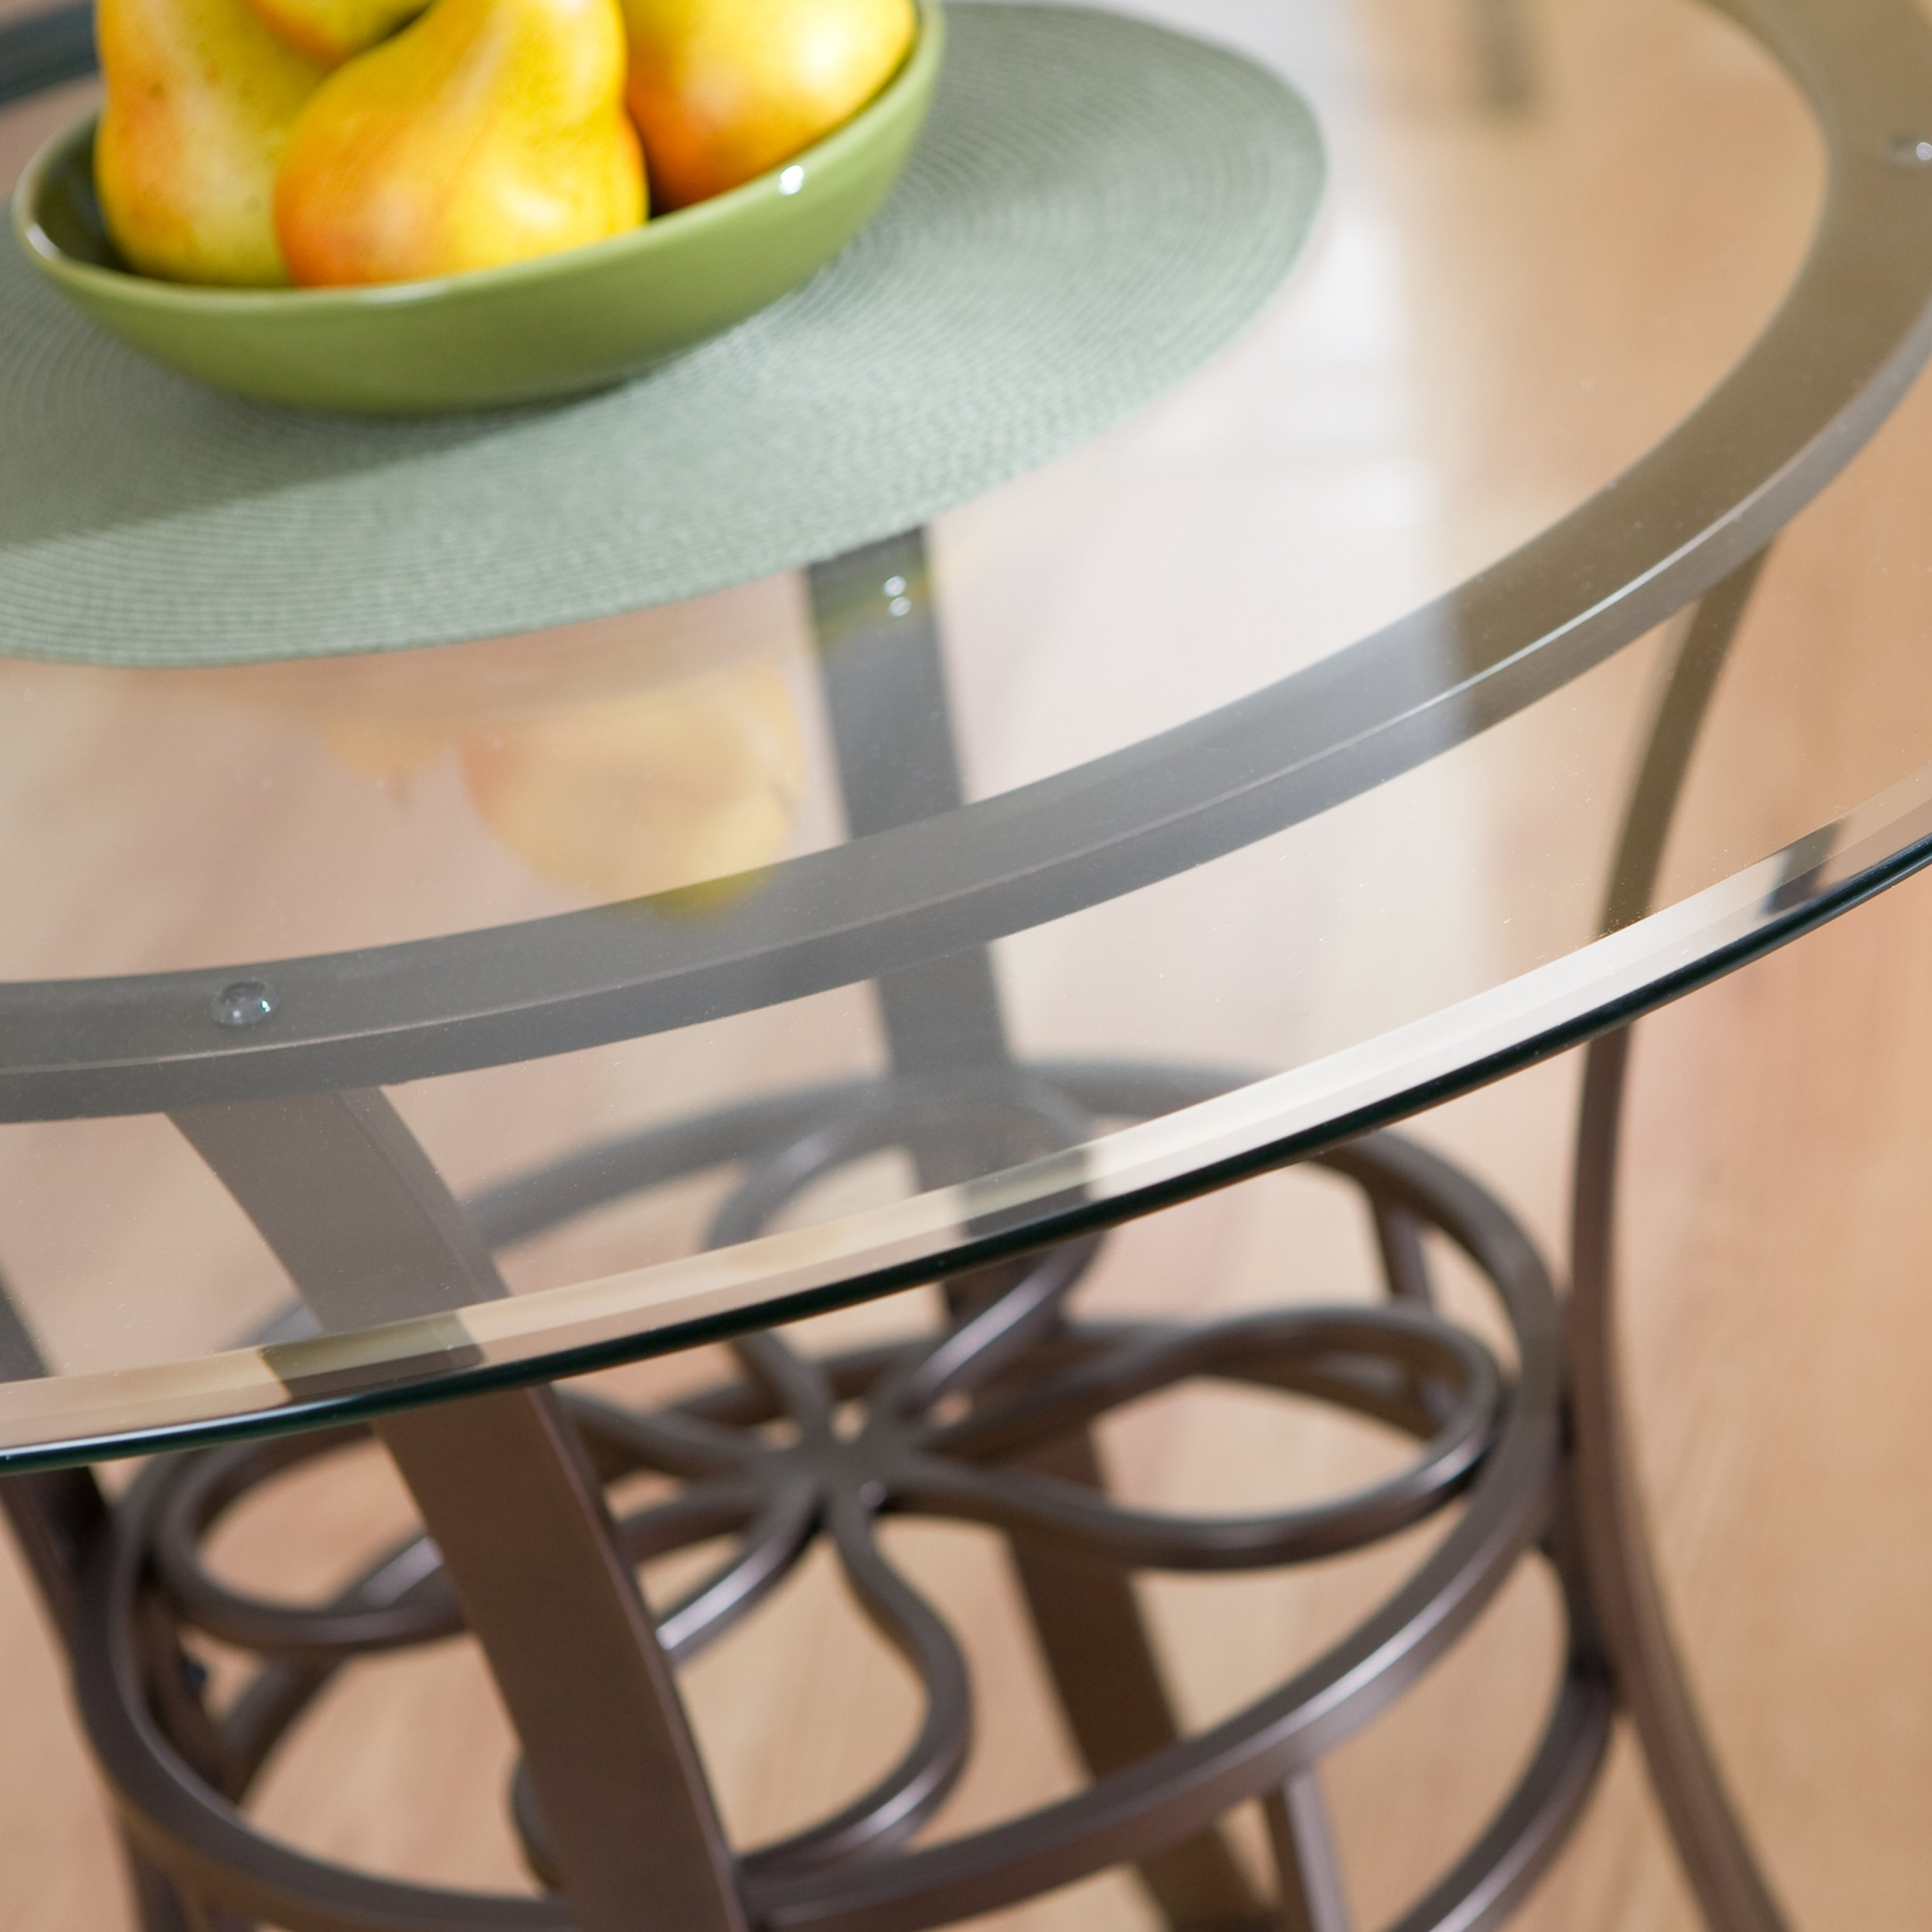 Southern Enterprises Lucianna Glass Top Dining Table, Dark Brown Finish by Southern Enterprises (Image #3)